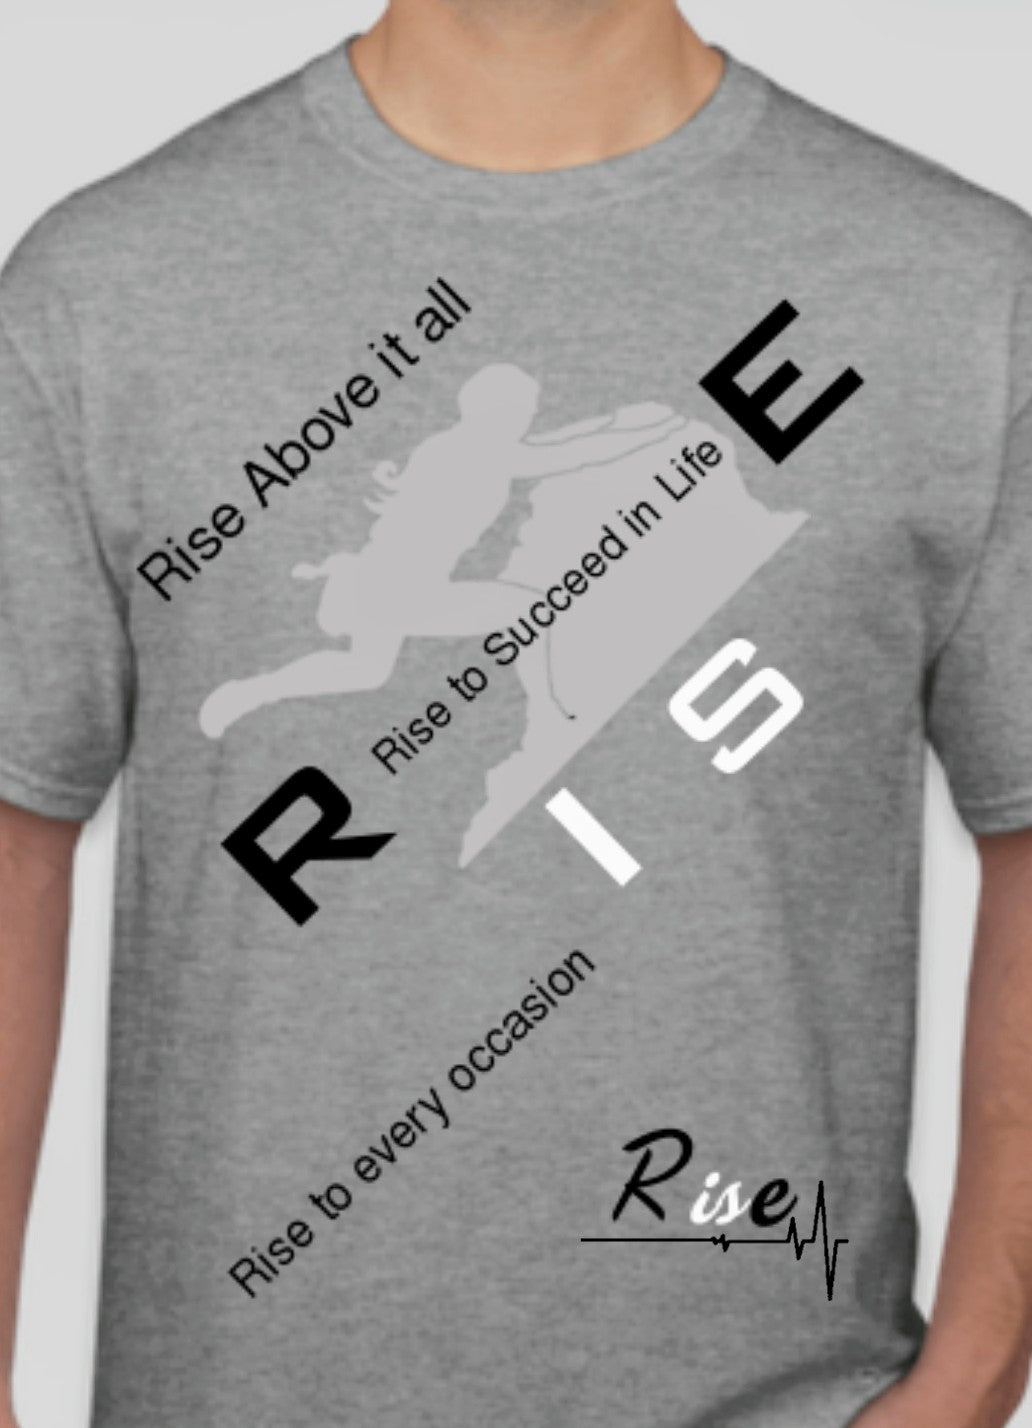 Rise short sleeve t-shirt